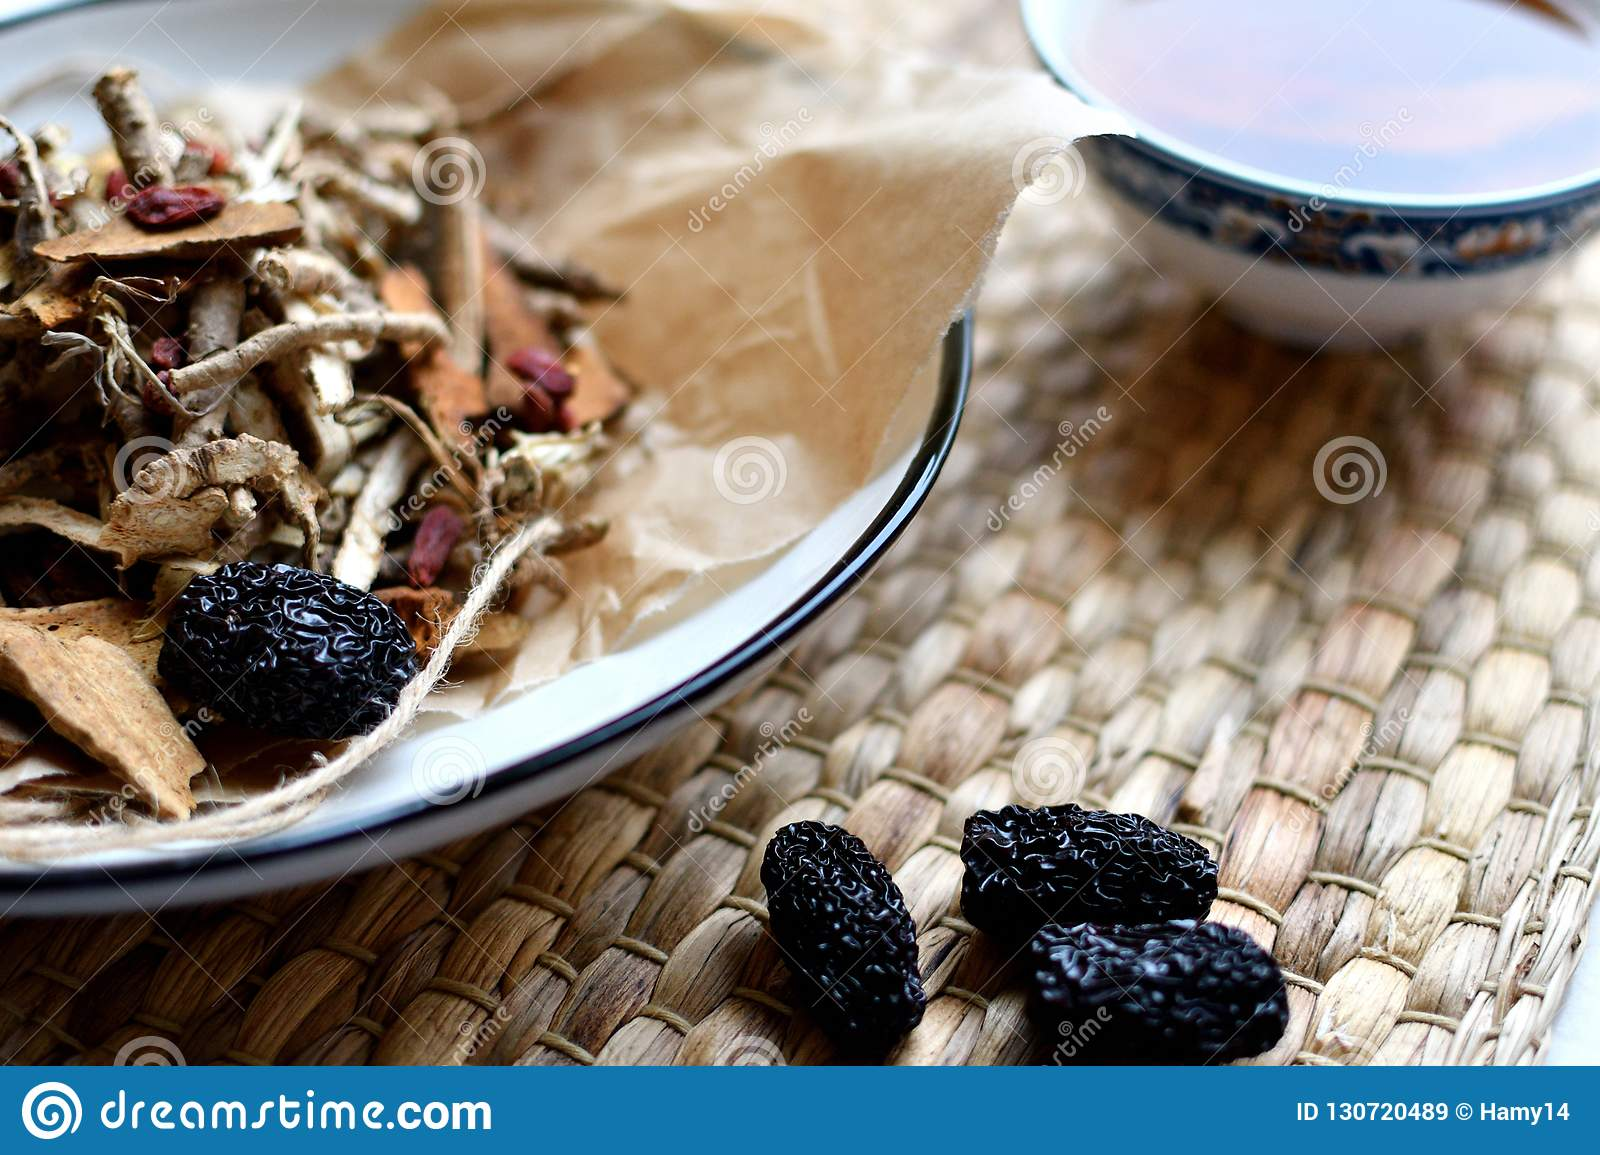 Chinese traditional medicine script. Herbal tea with jujubes, goji berries, gingseng roots and others on parchment paper on neutra